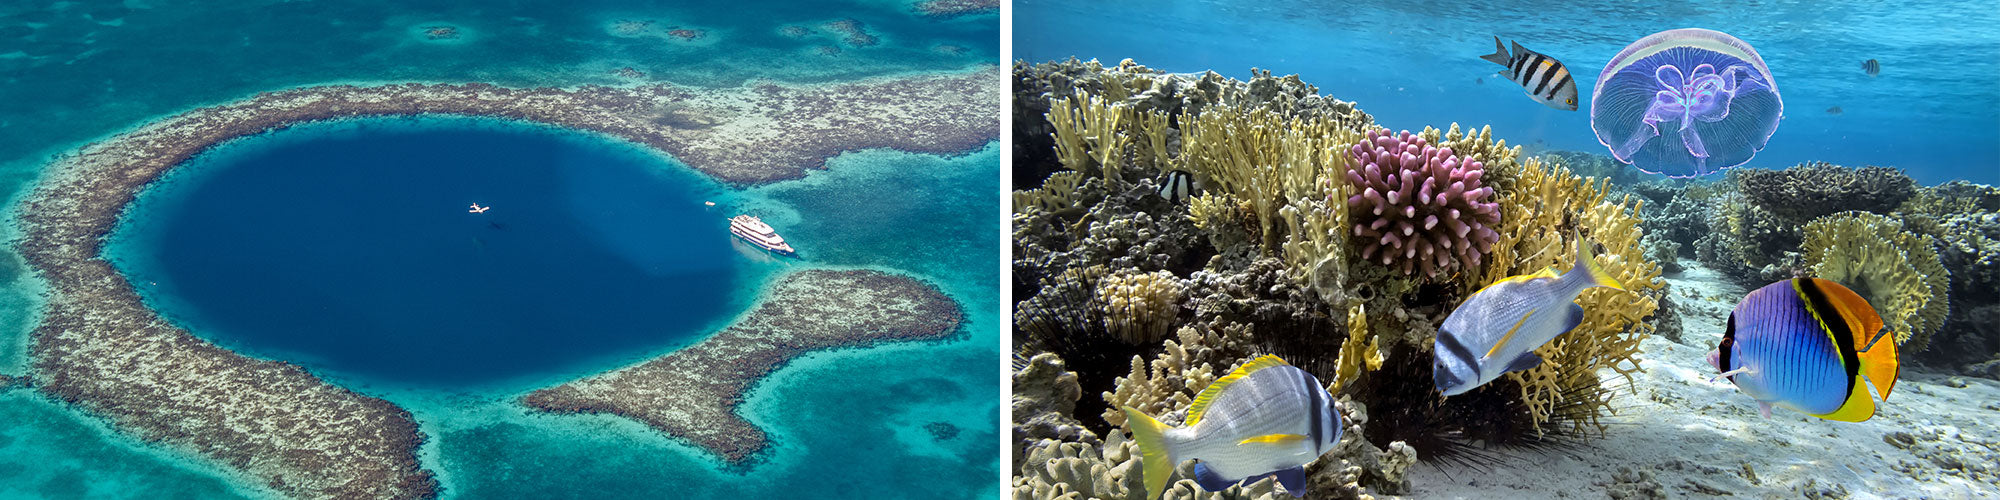 Fine Art Photography Prints of Belize Barrier Reef - Satellite Images of Earth - Point Two Design